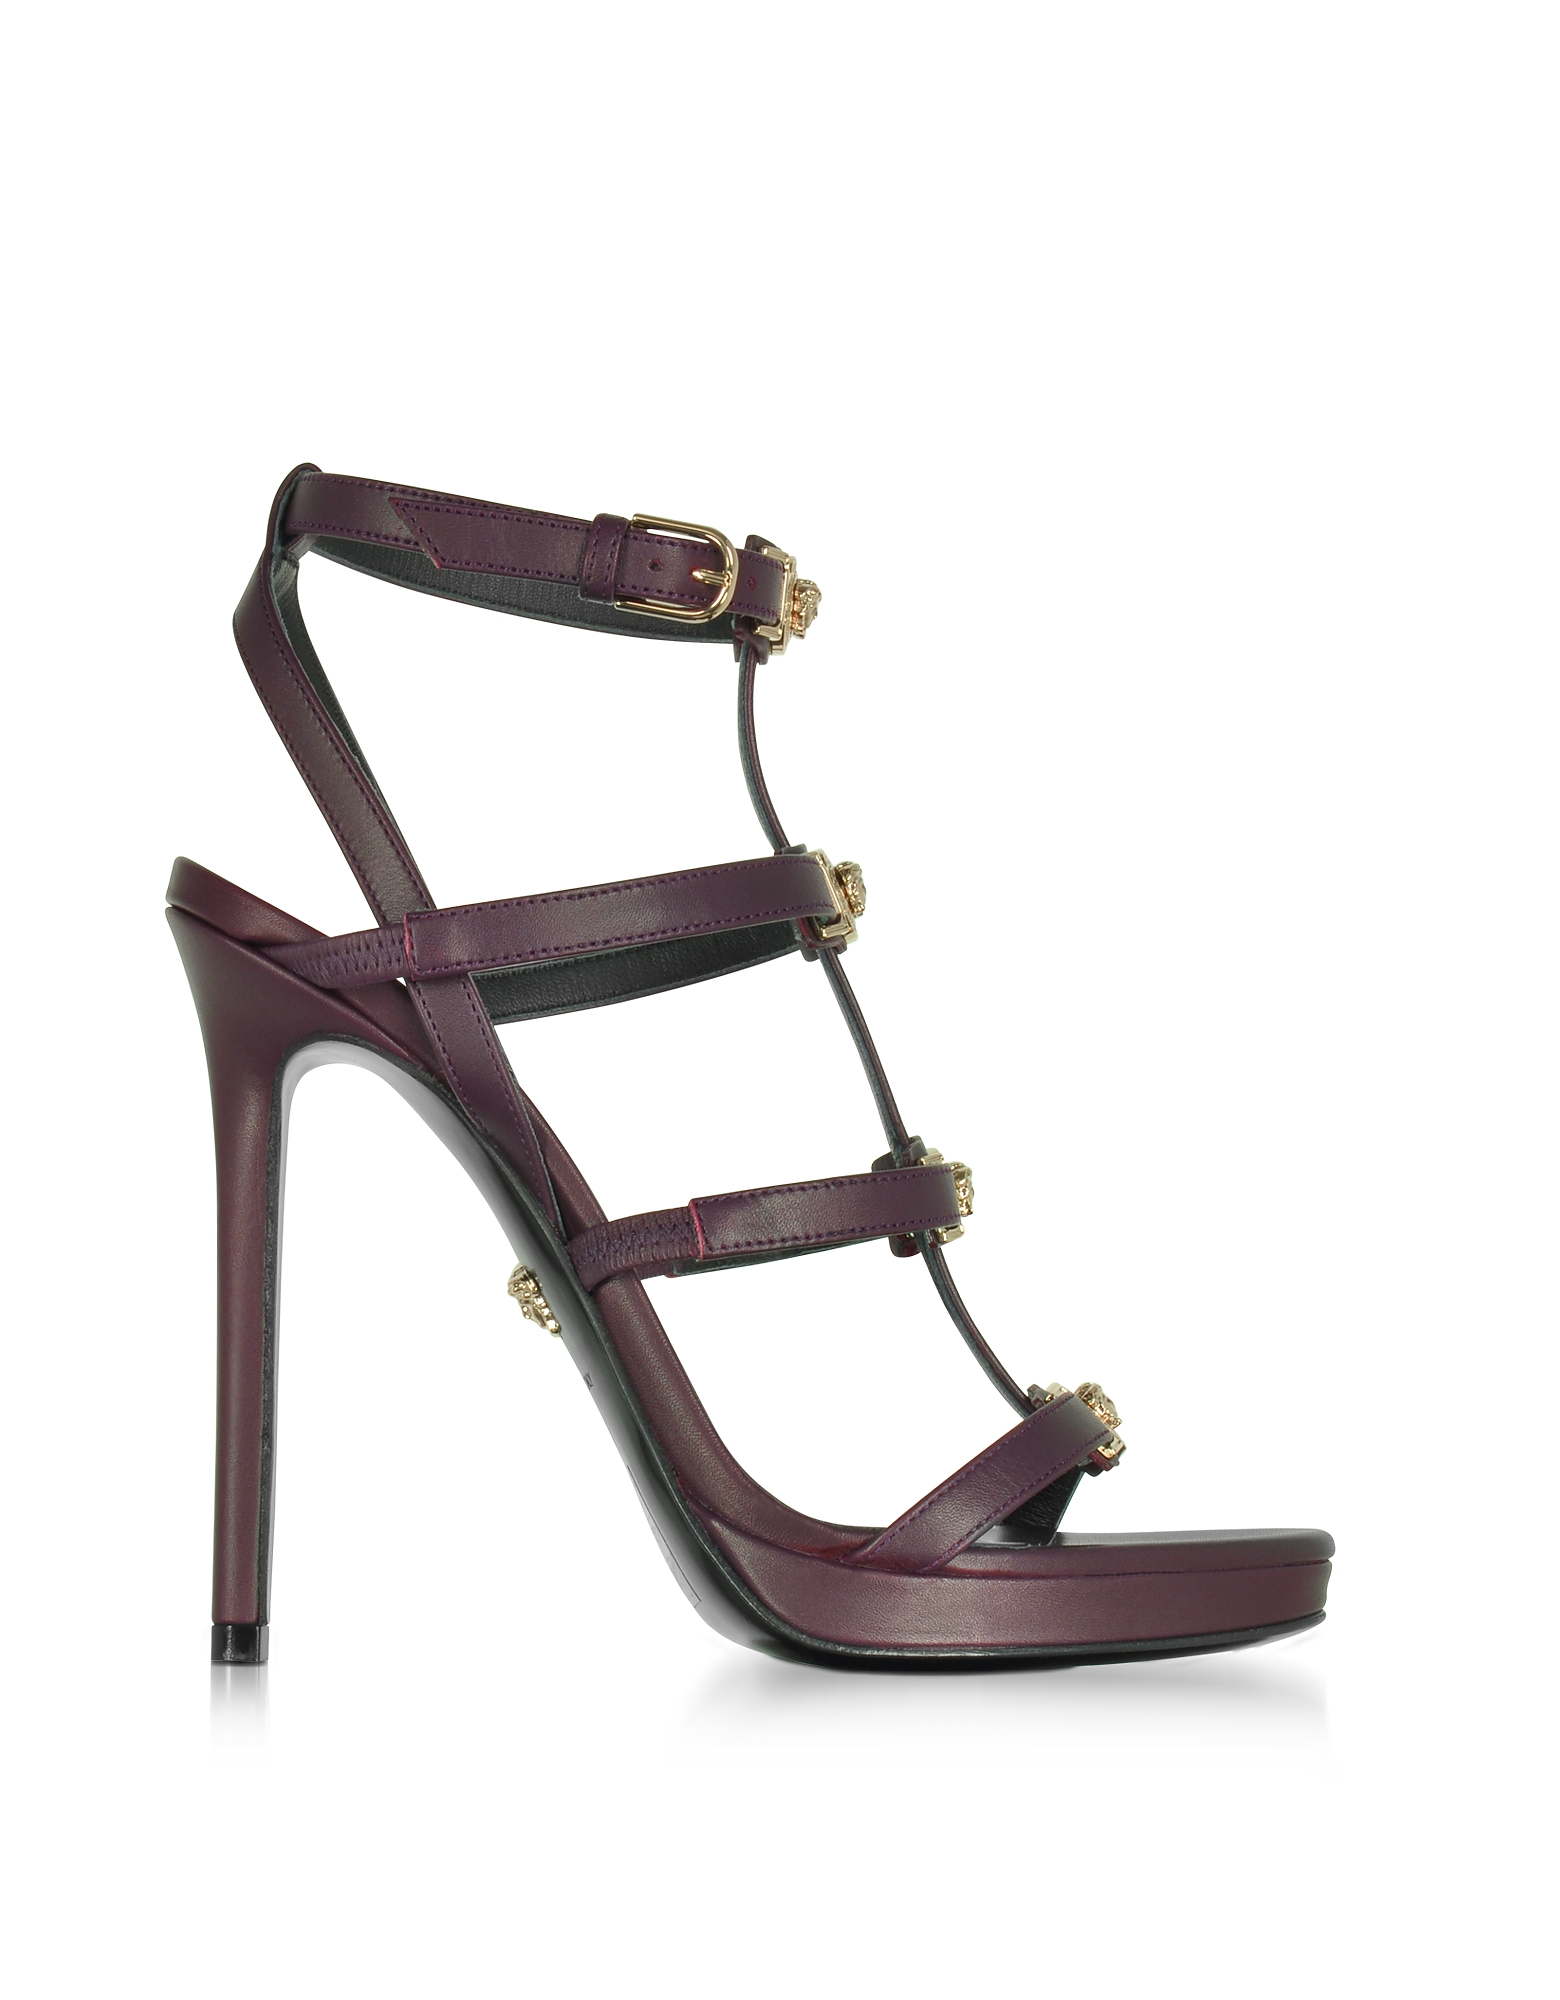 Versace Shoes, Burgundy Leather Sandal w/Light Gold Medusa